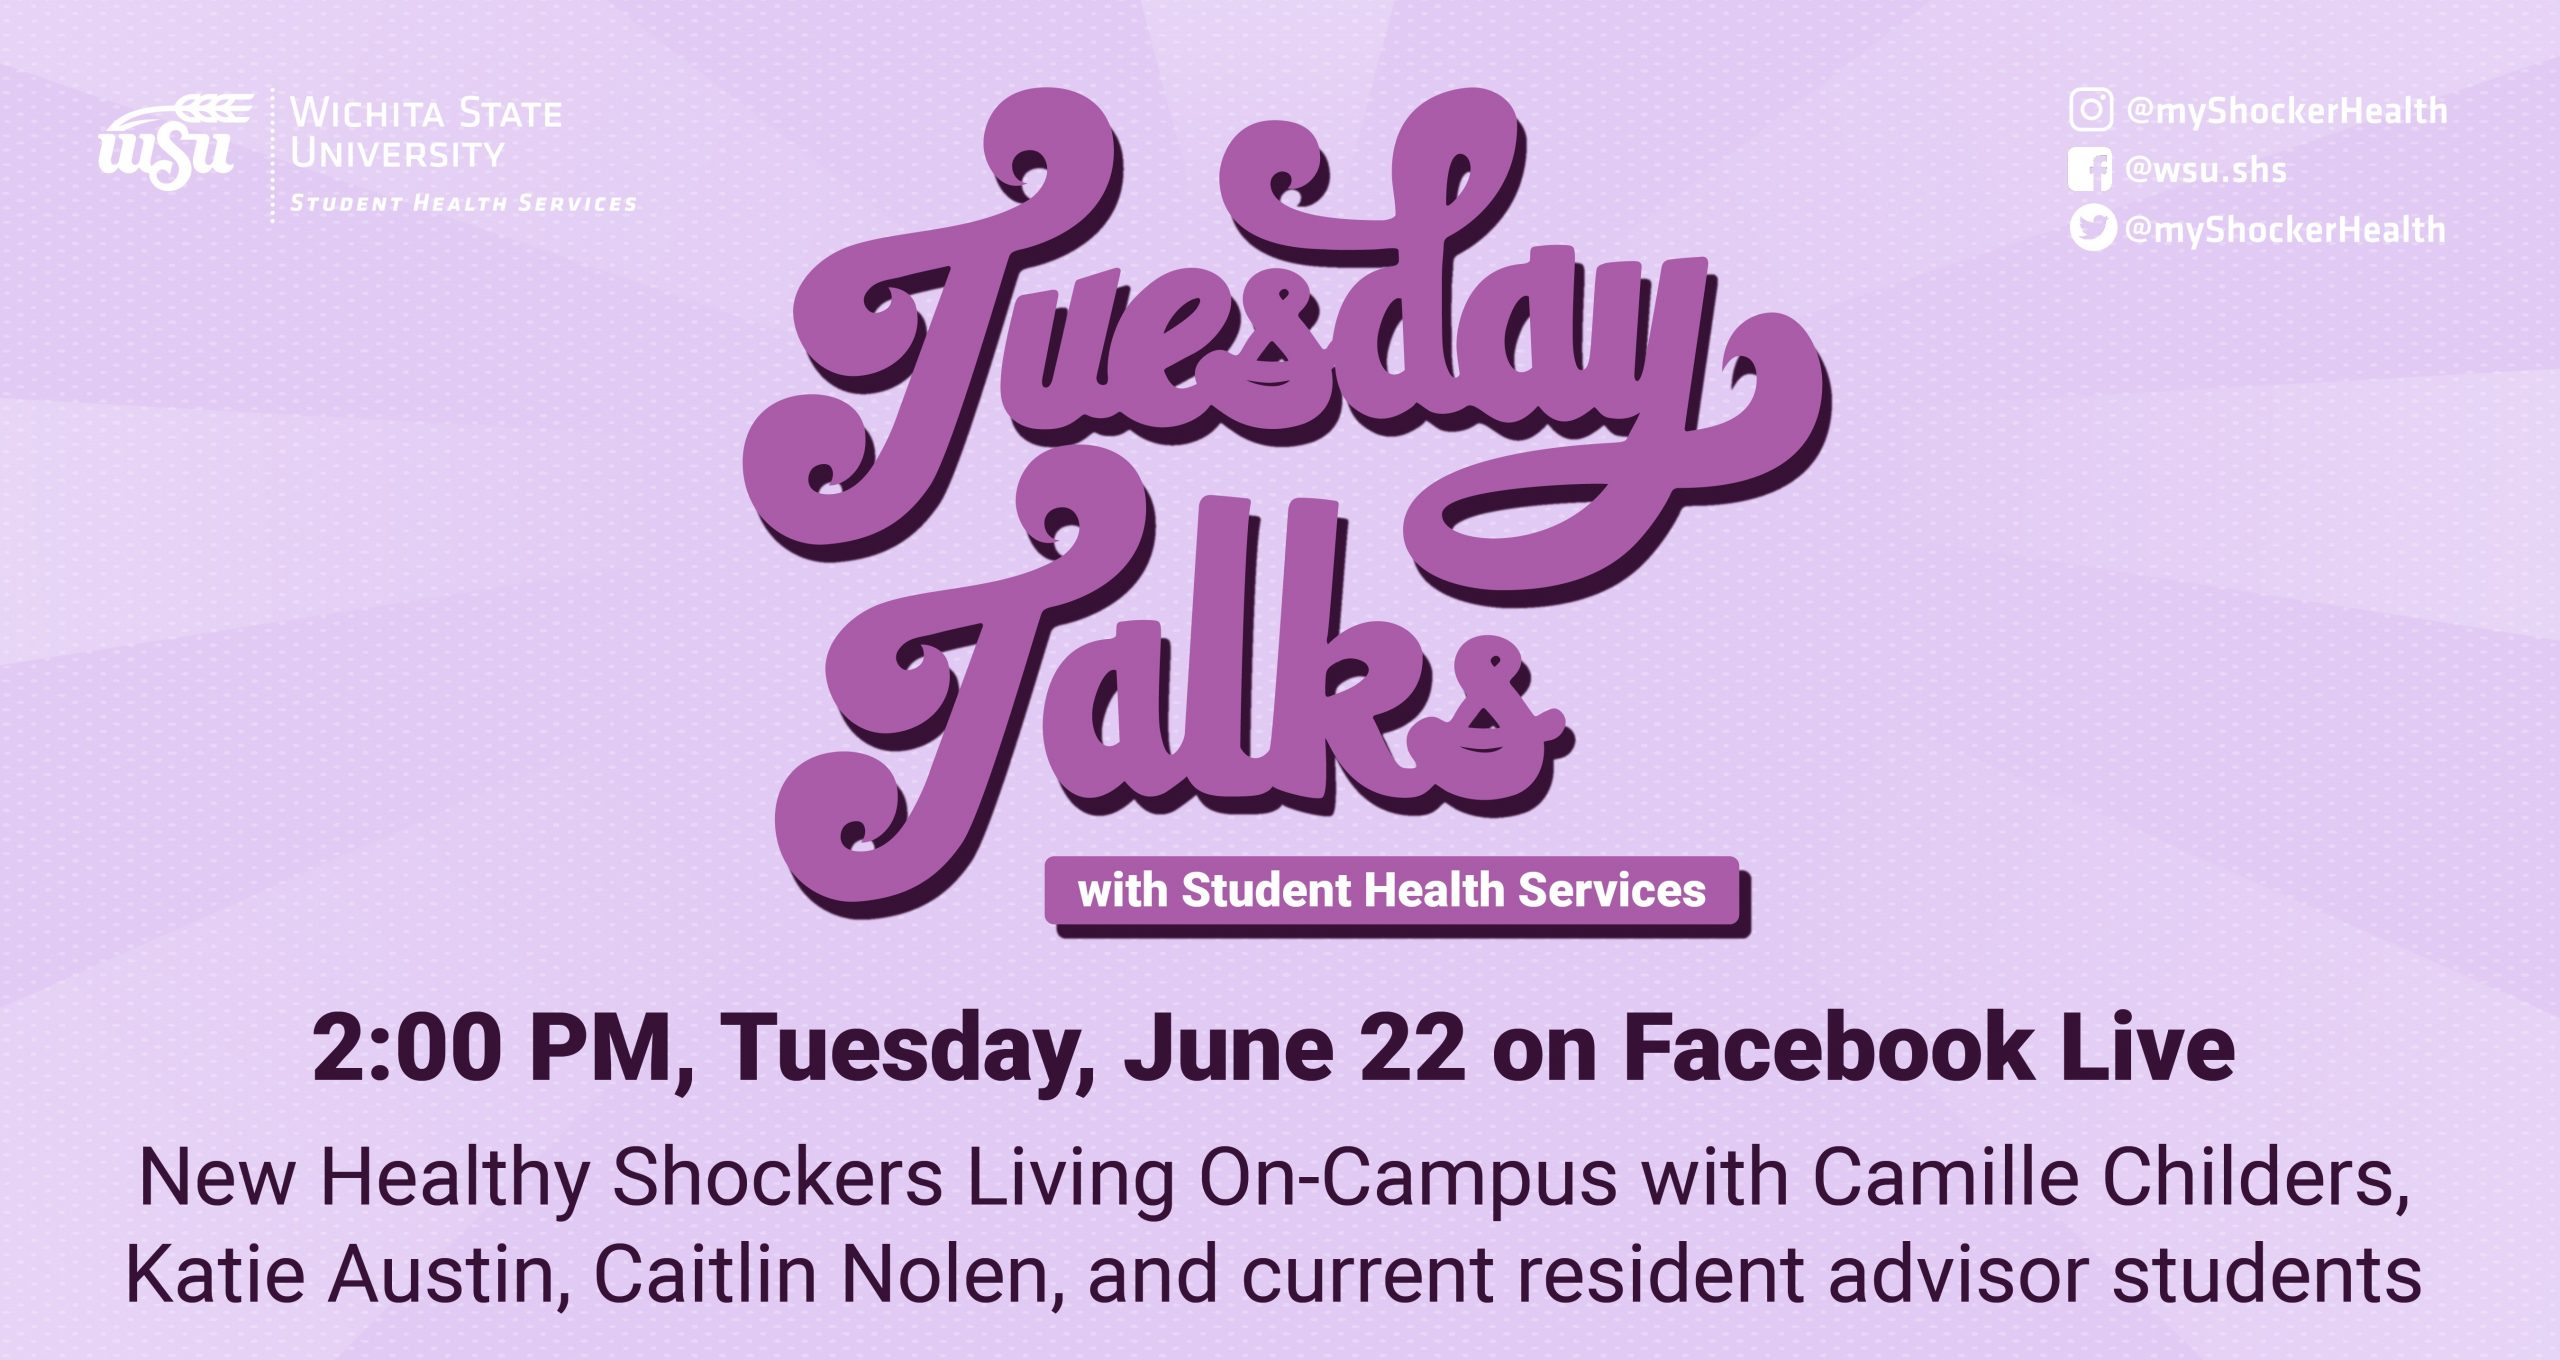 Purple background with text: Tuesday Talks with Student Health Services, Tuesday June 22, New Healthy Shockers Living On-Campus with Camille Childers, Katie Austin, Caitlin Nolen, and current resident advisor students.